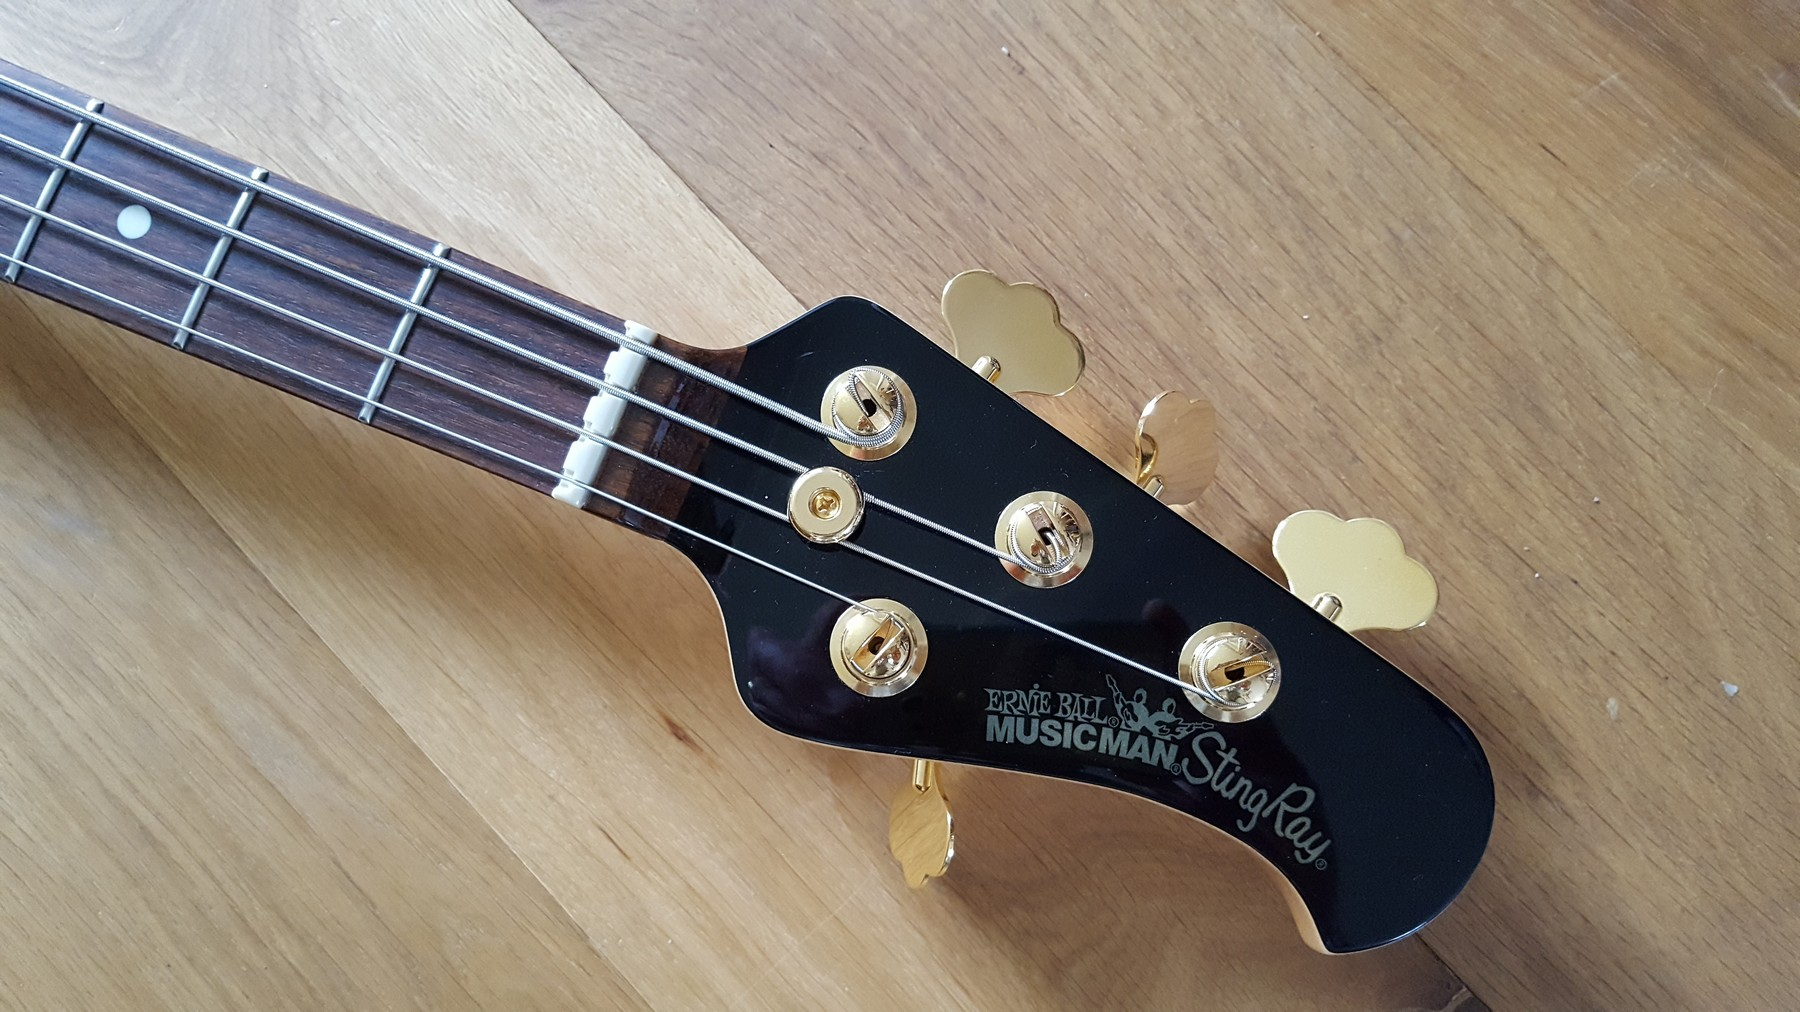 sold musicman stingray bass 3eq 2006 limited edition classic cool guitars. Black Bedroom Furniture Sets. Home Design Ideas